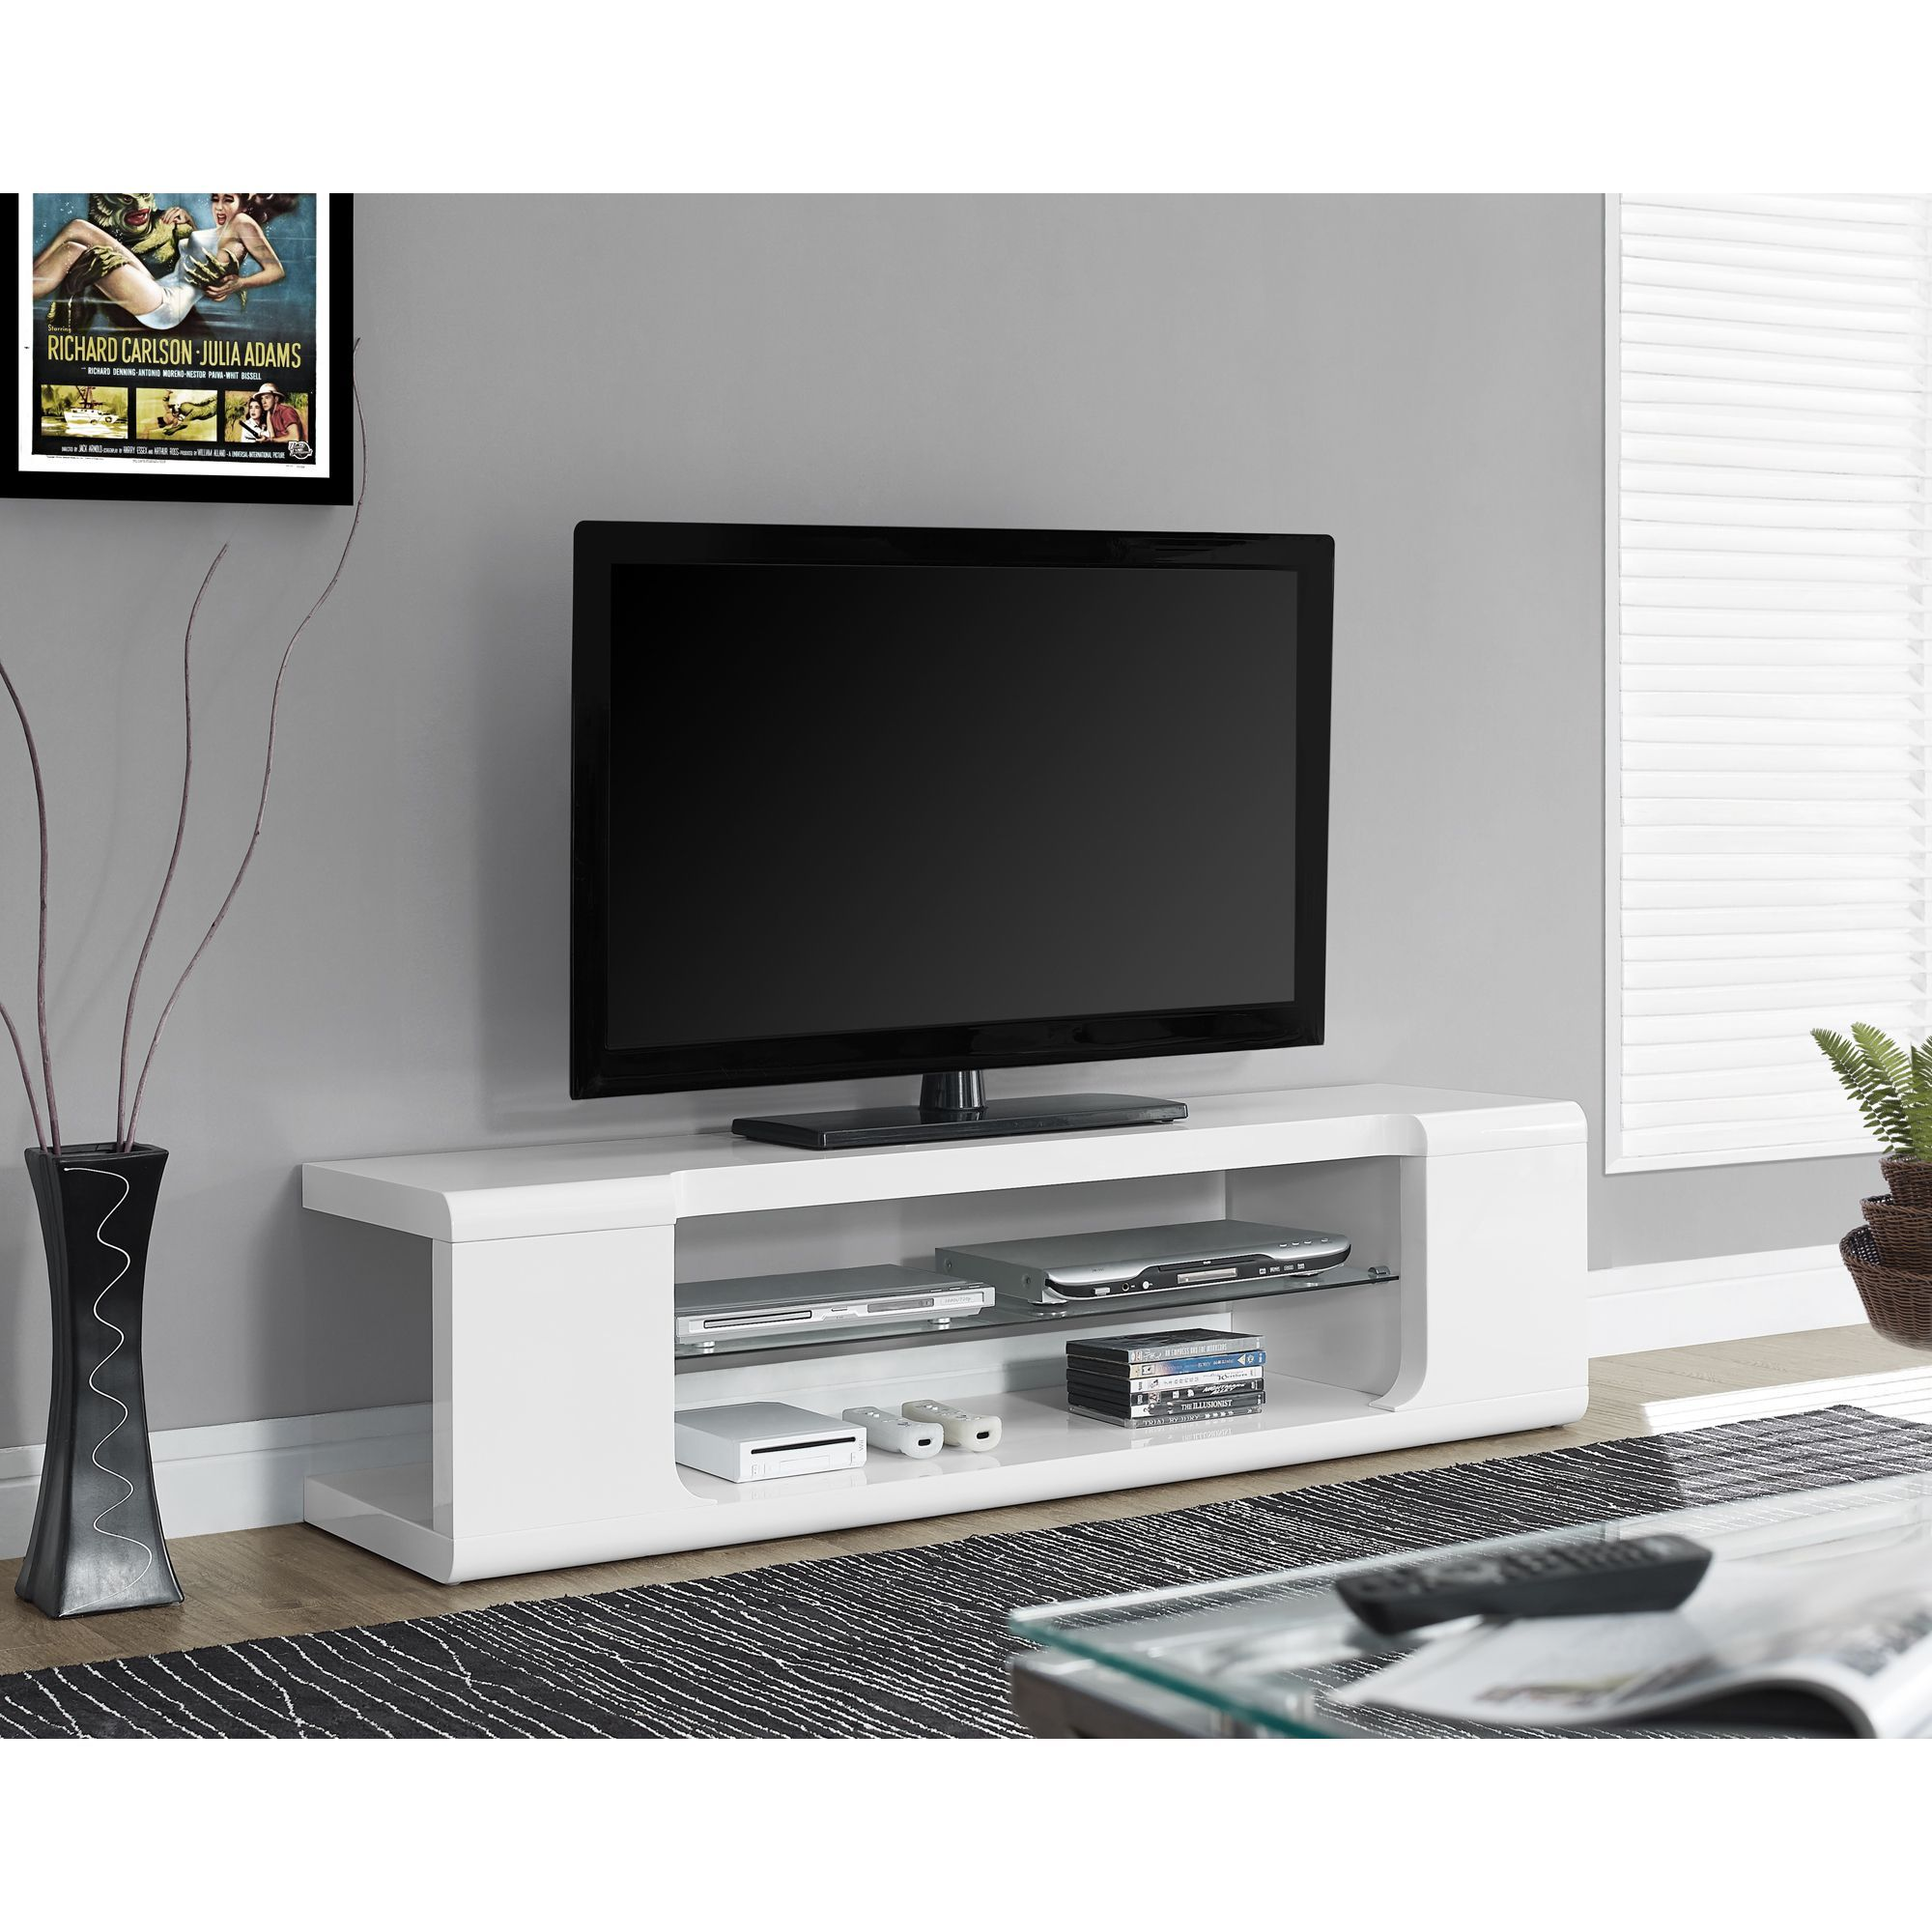 Keep Your Living Space Clutter Free With This Unusual Yet  # Hamilton Atylia Meuble Tv